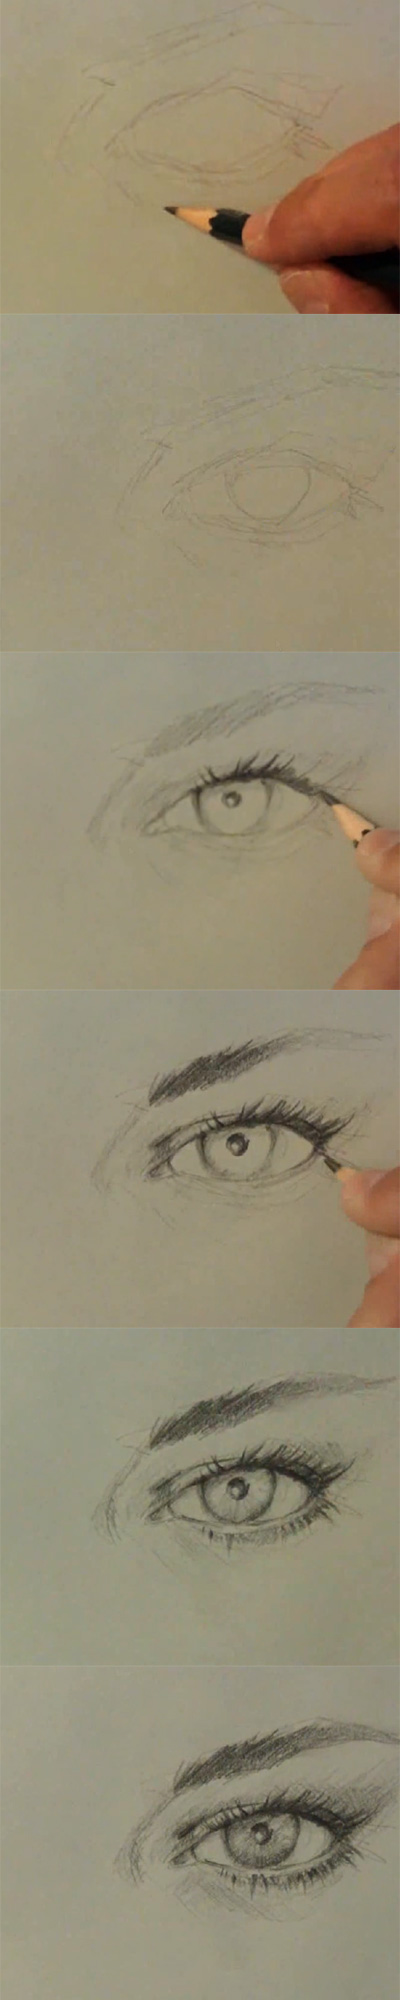 How to draw eye